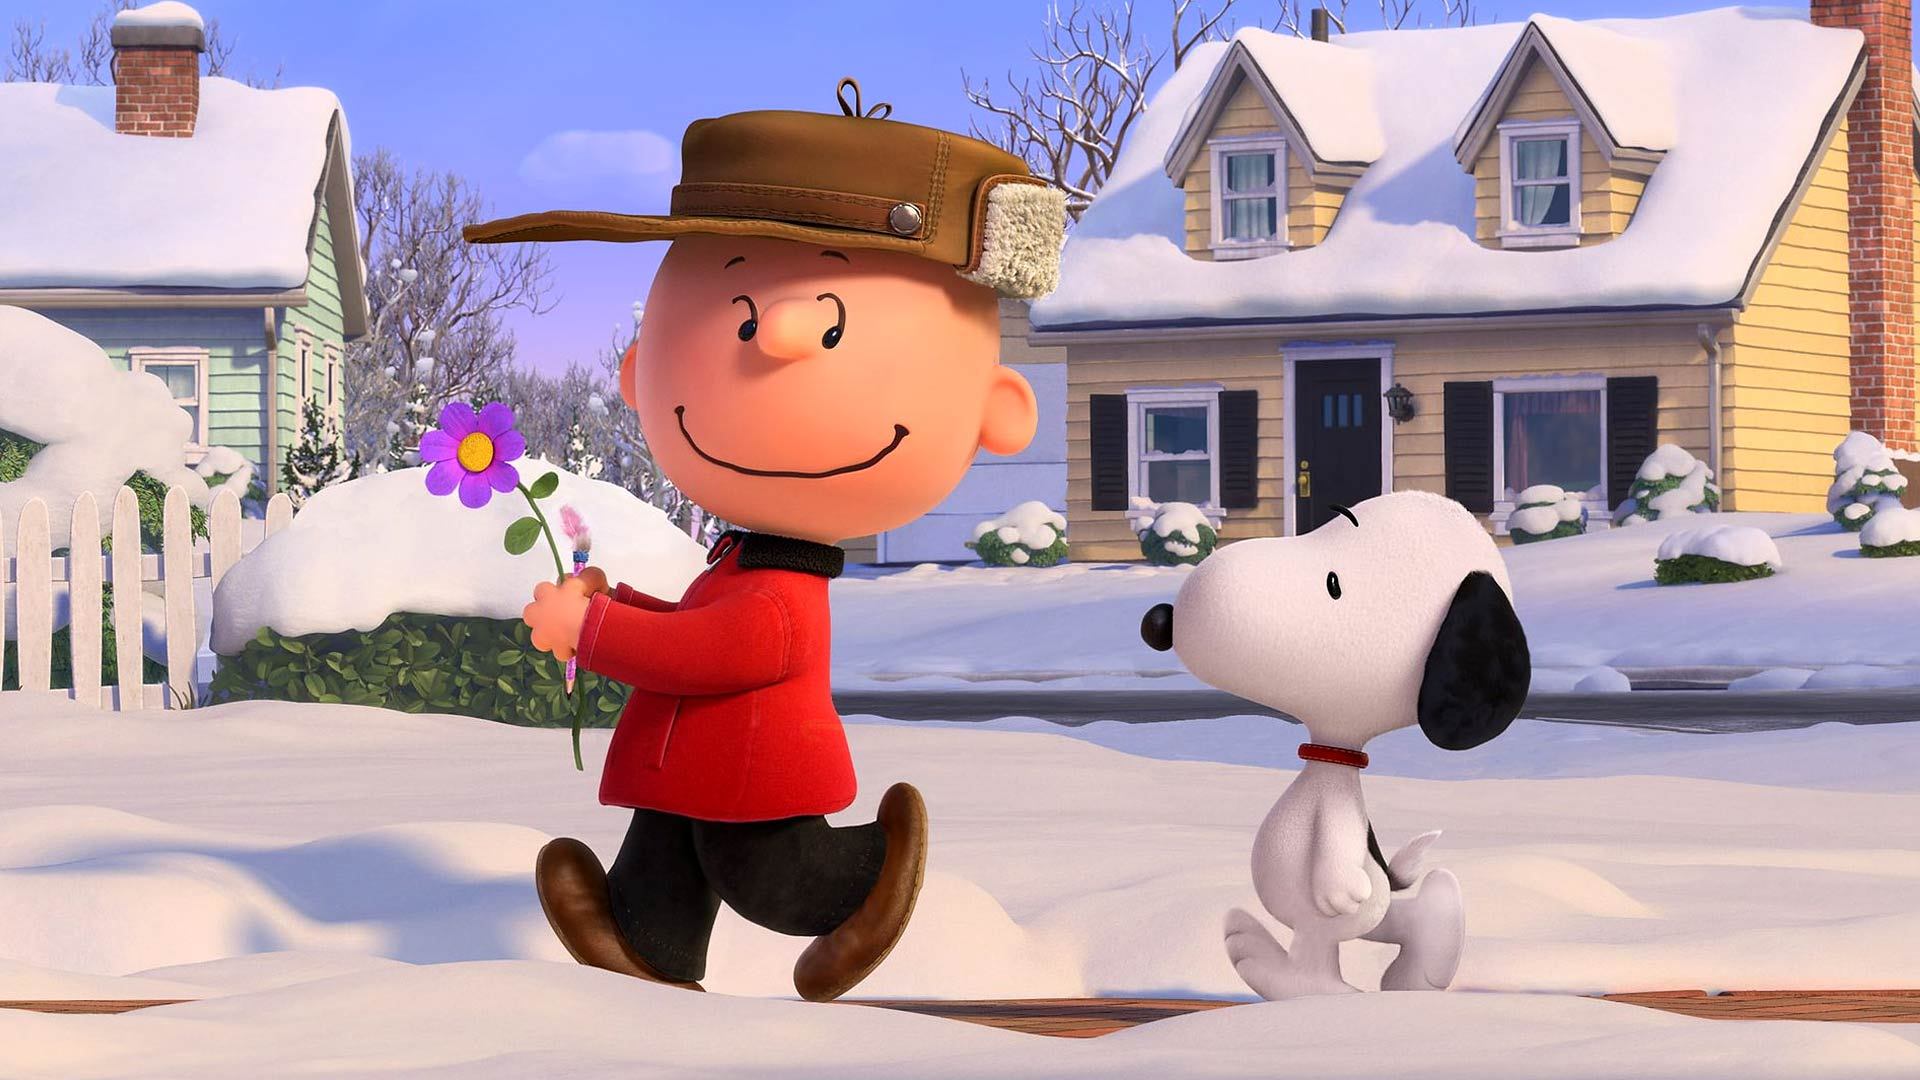 snoopy in The Peanuts Movie 2015 wallpapers HD 1080p for your desktop 1920x1080